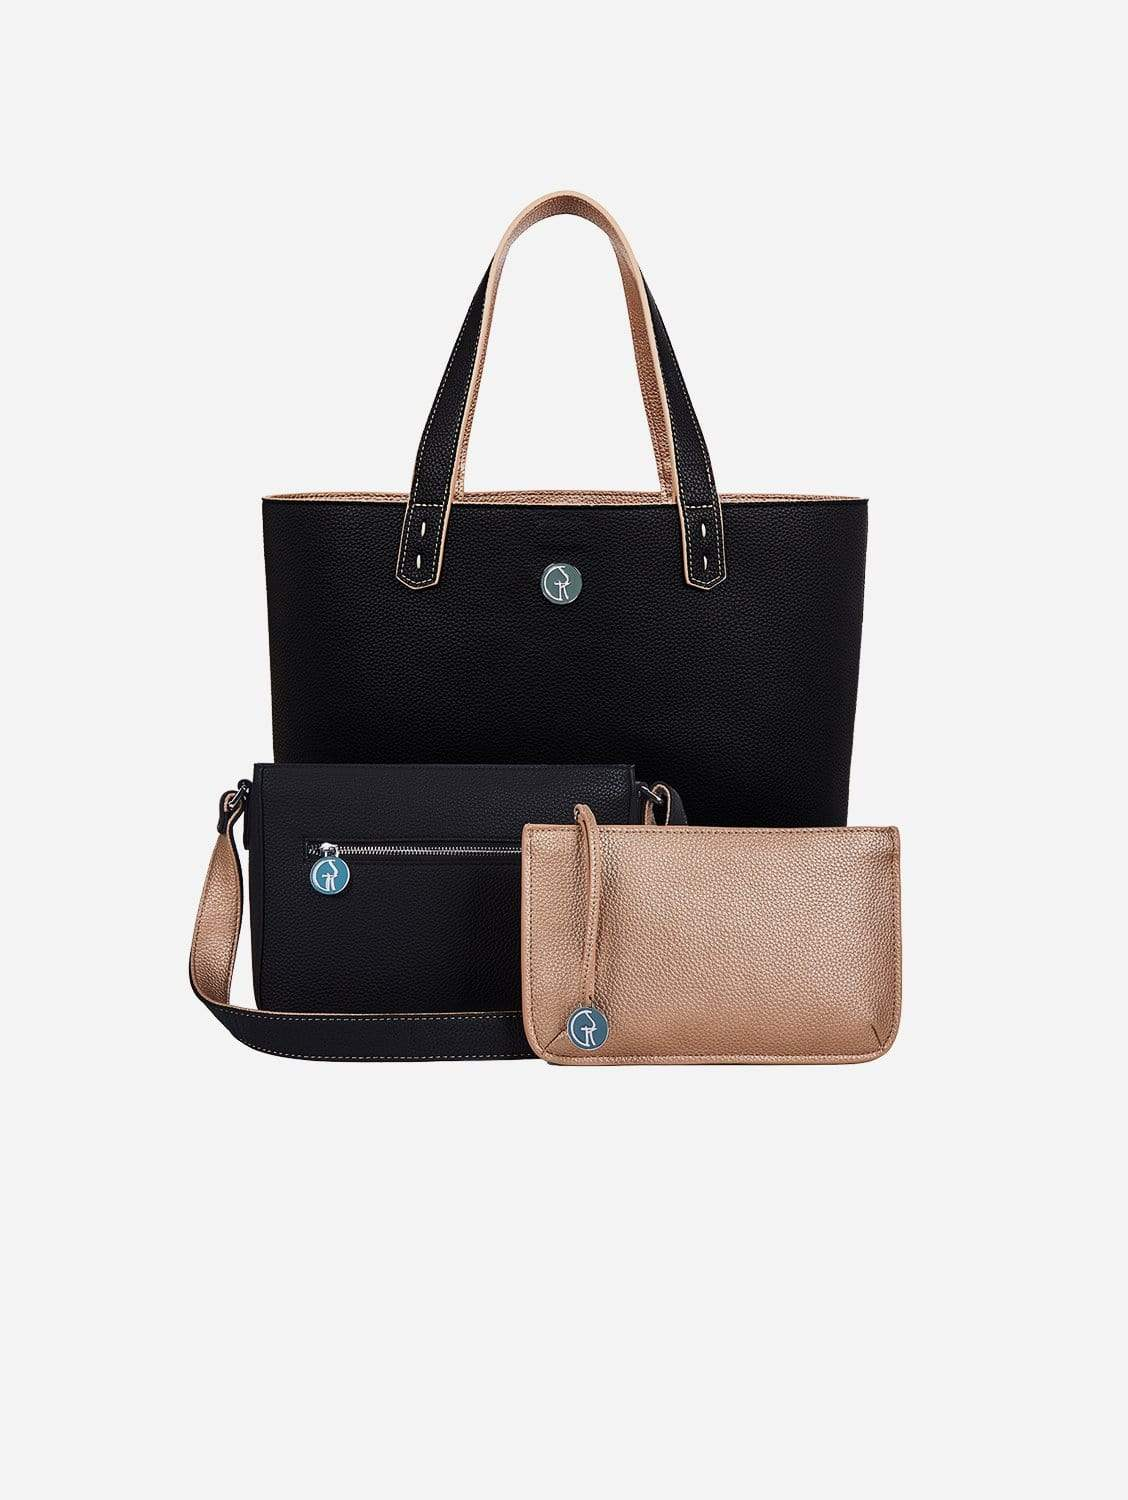 3 Vegan Leather Bags in 1 | Onyx & Rose Gold